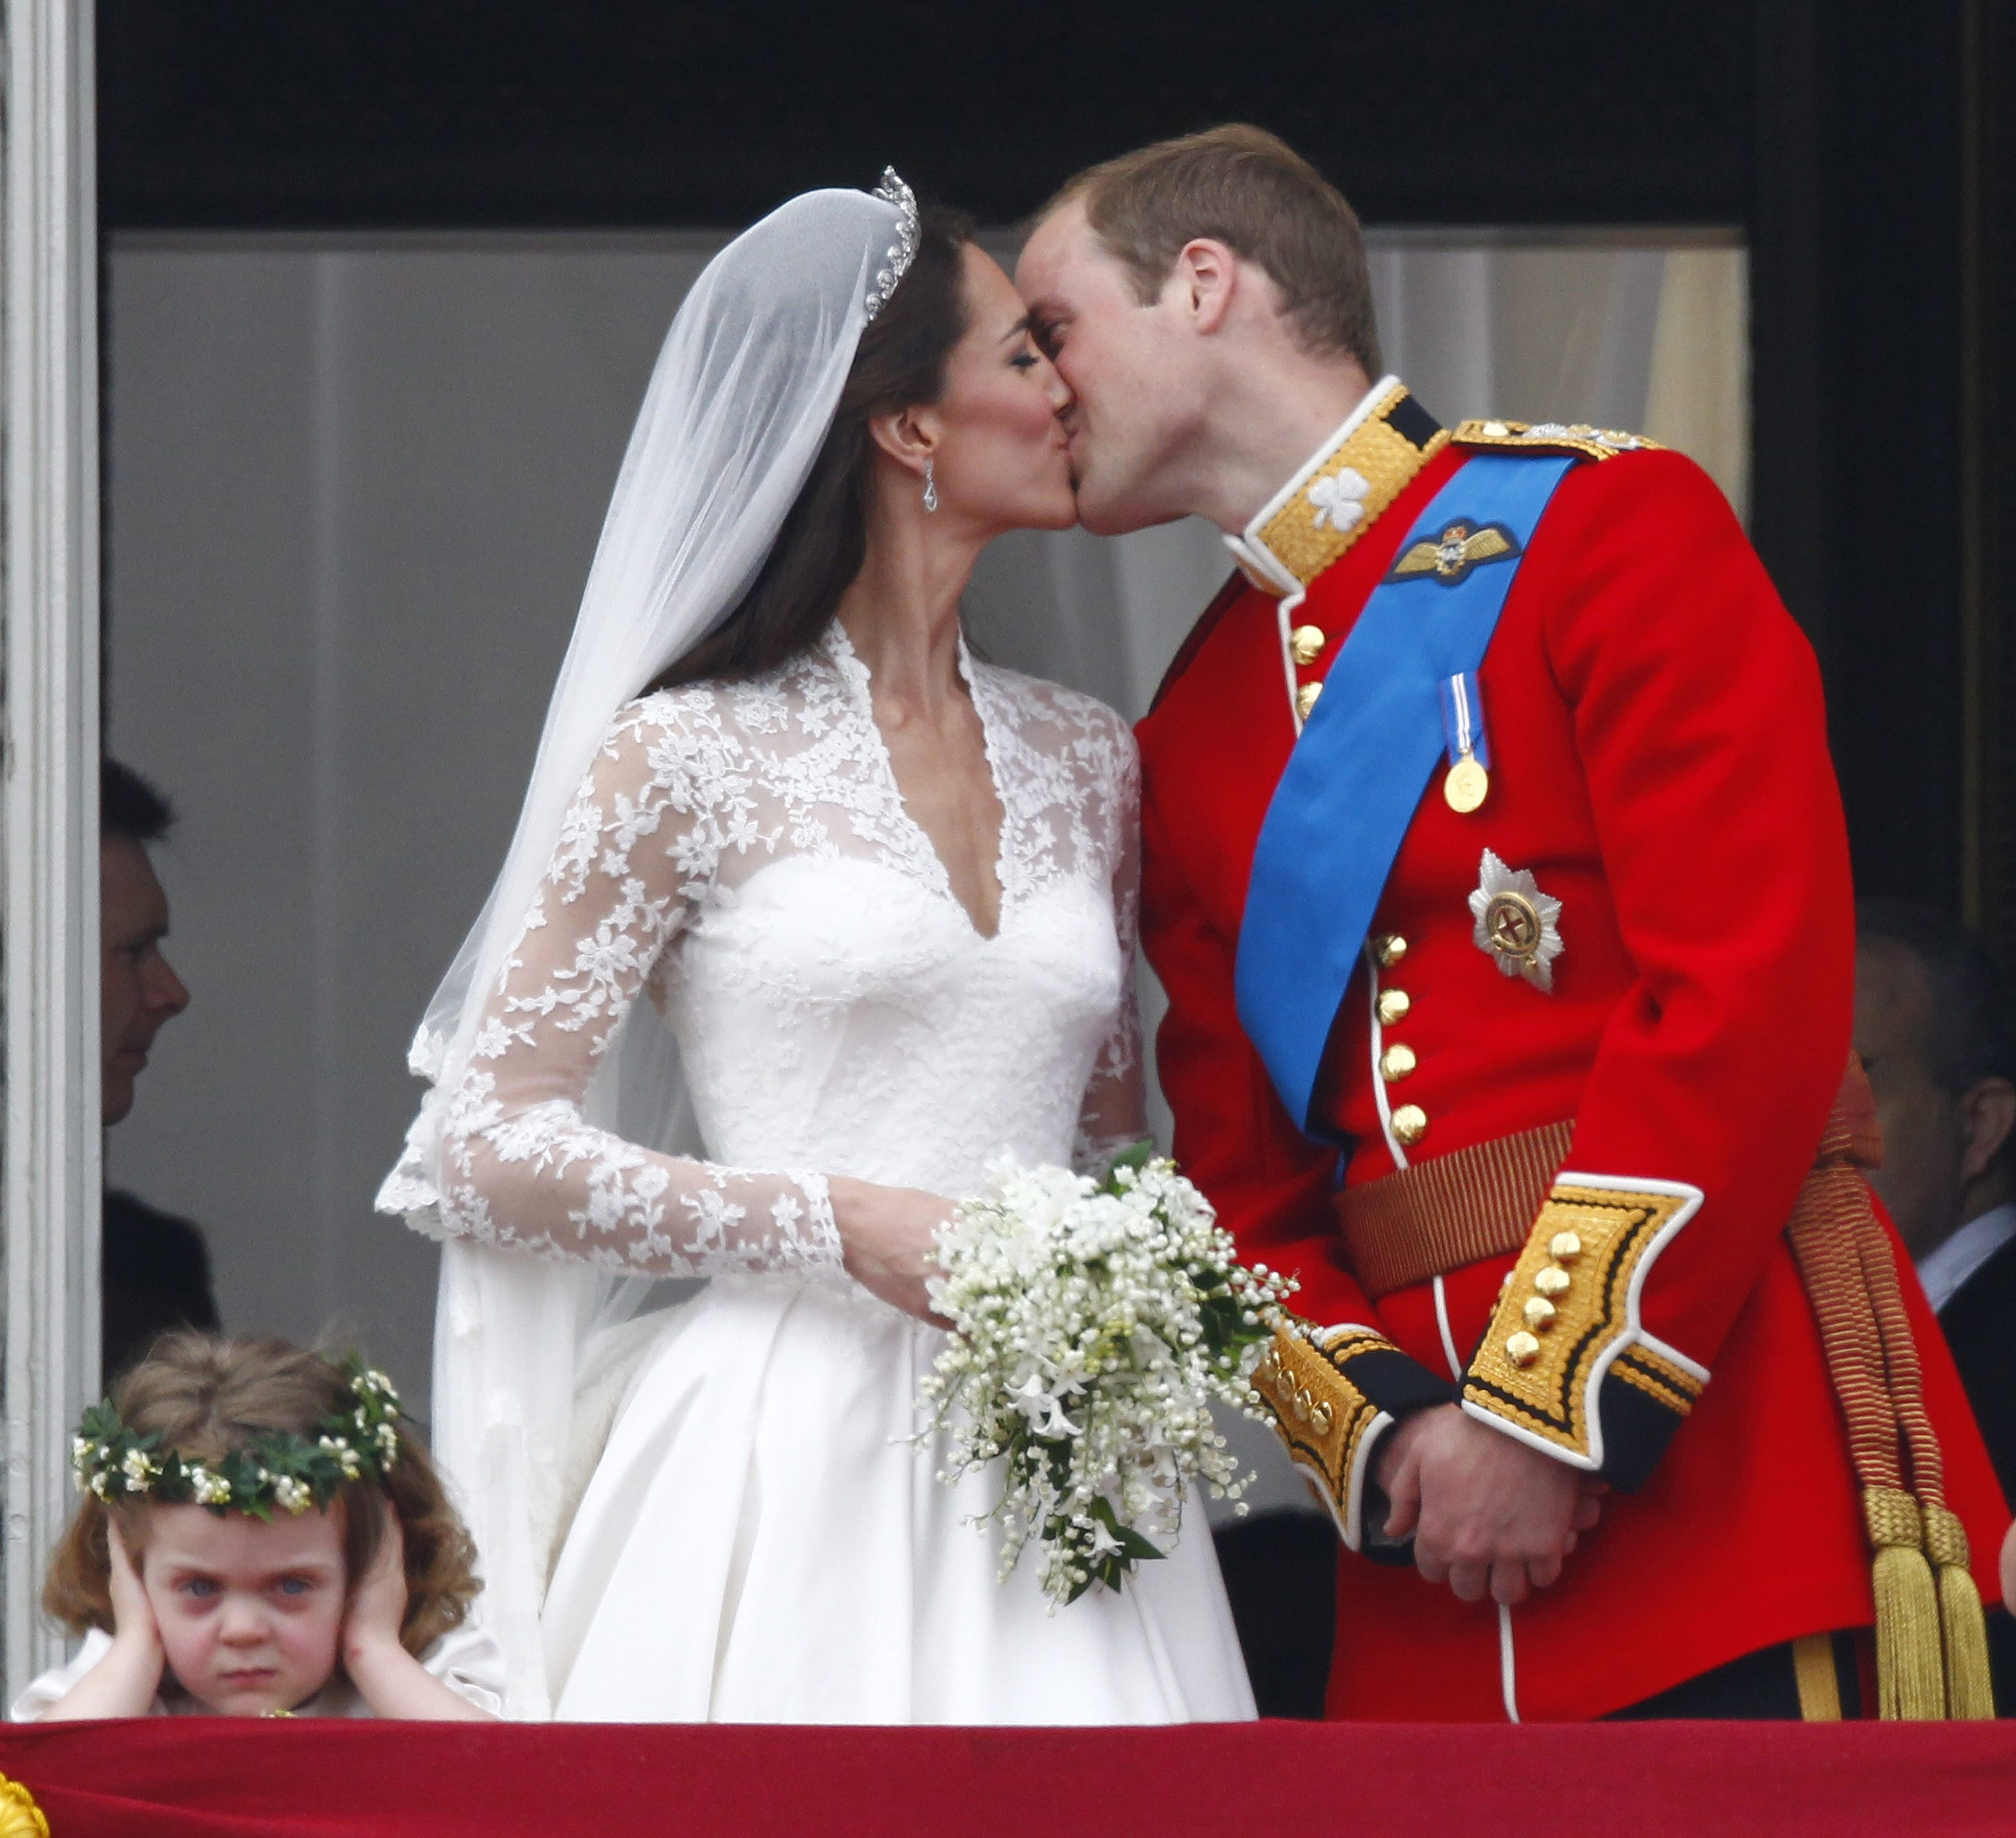 Wedding of Prince William and Catherine Middleton Buckingham Palace